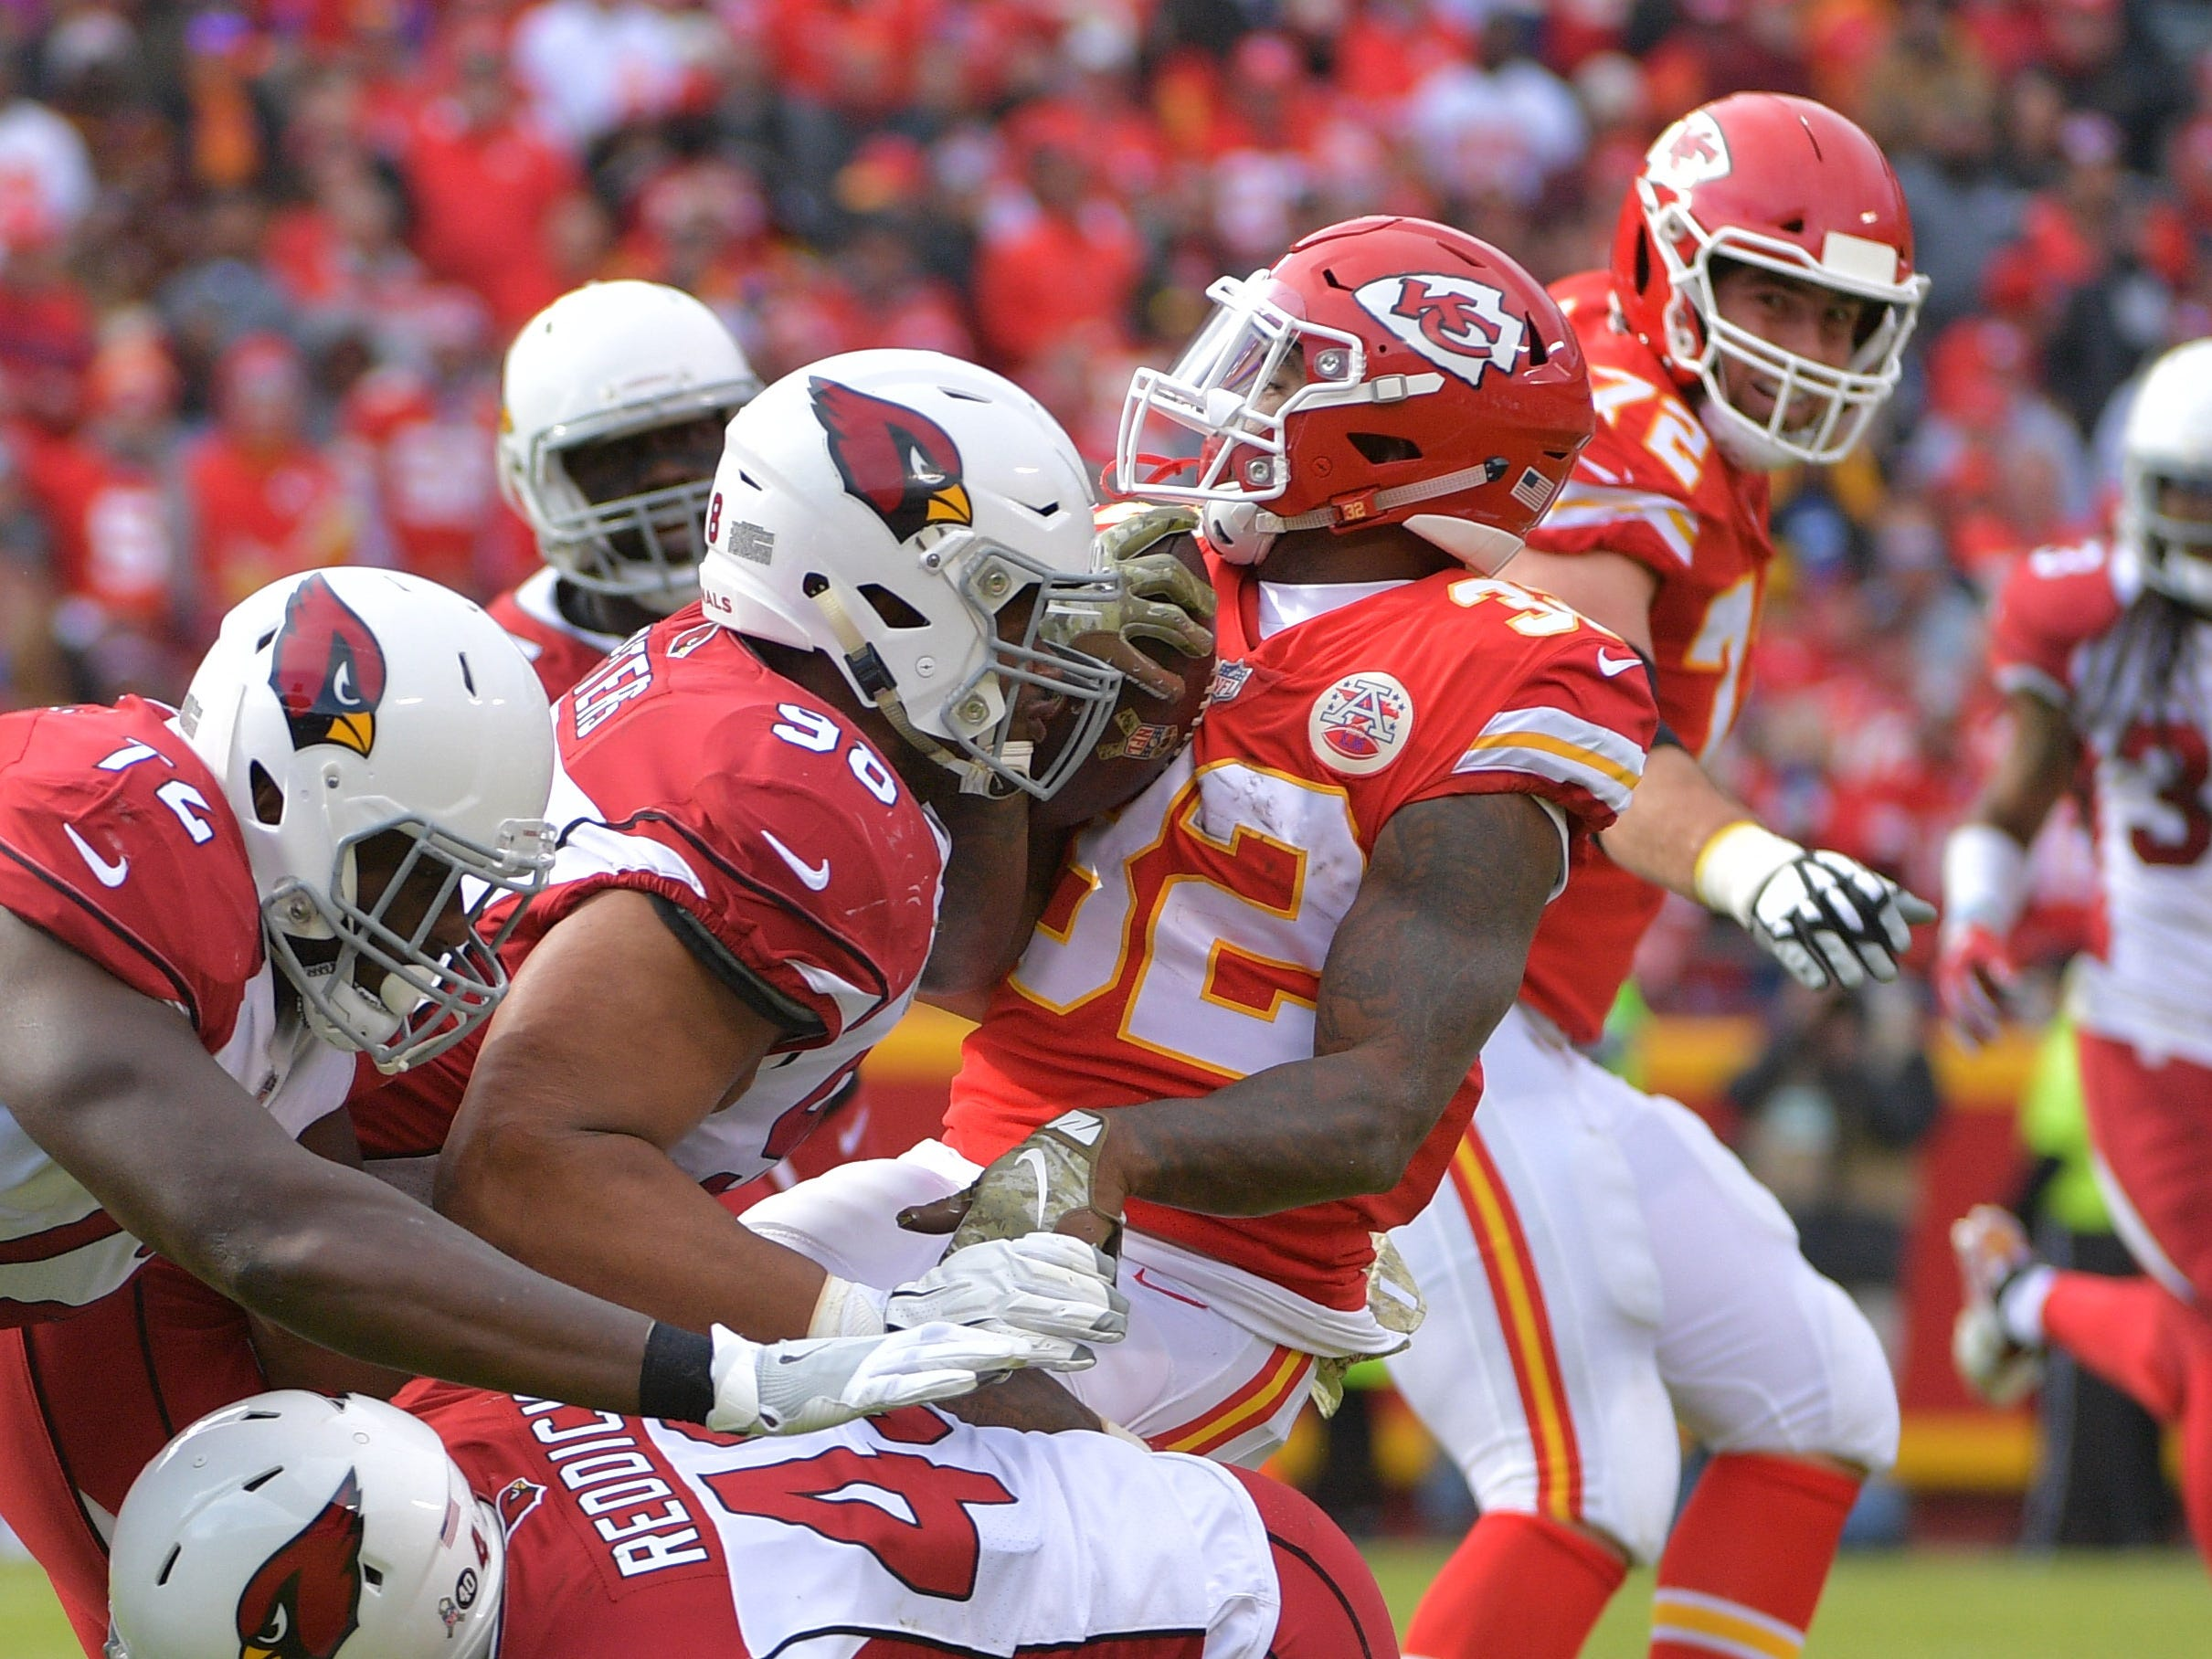 Nov 11, 2018; Kansas City, MO, USA; Kansas City Chiefs running back Spencer Ware (32) is tackled by Arizona Cardinals defensive tackle Corey Peters (98) during the first half at Arrowhead Stadium. Mandatory Credit: Denny Medley-USA TODAY Sports